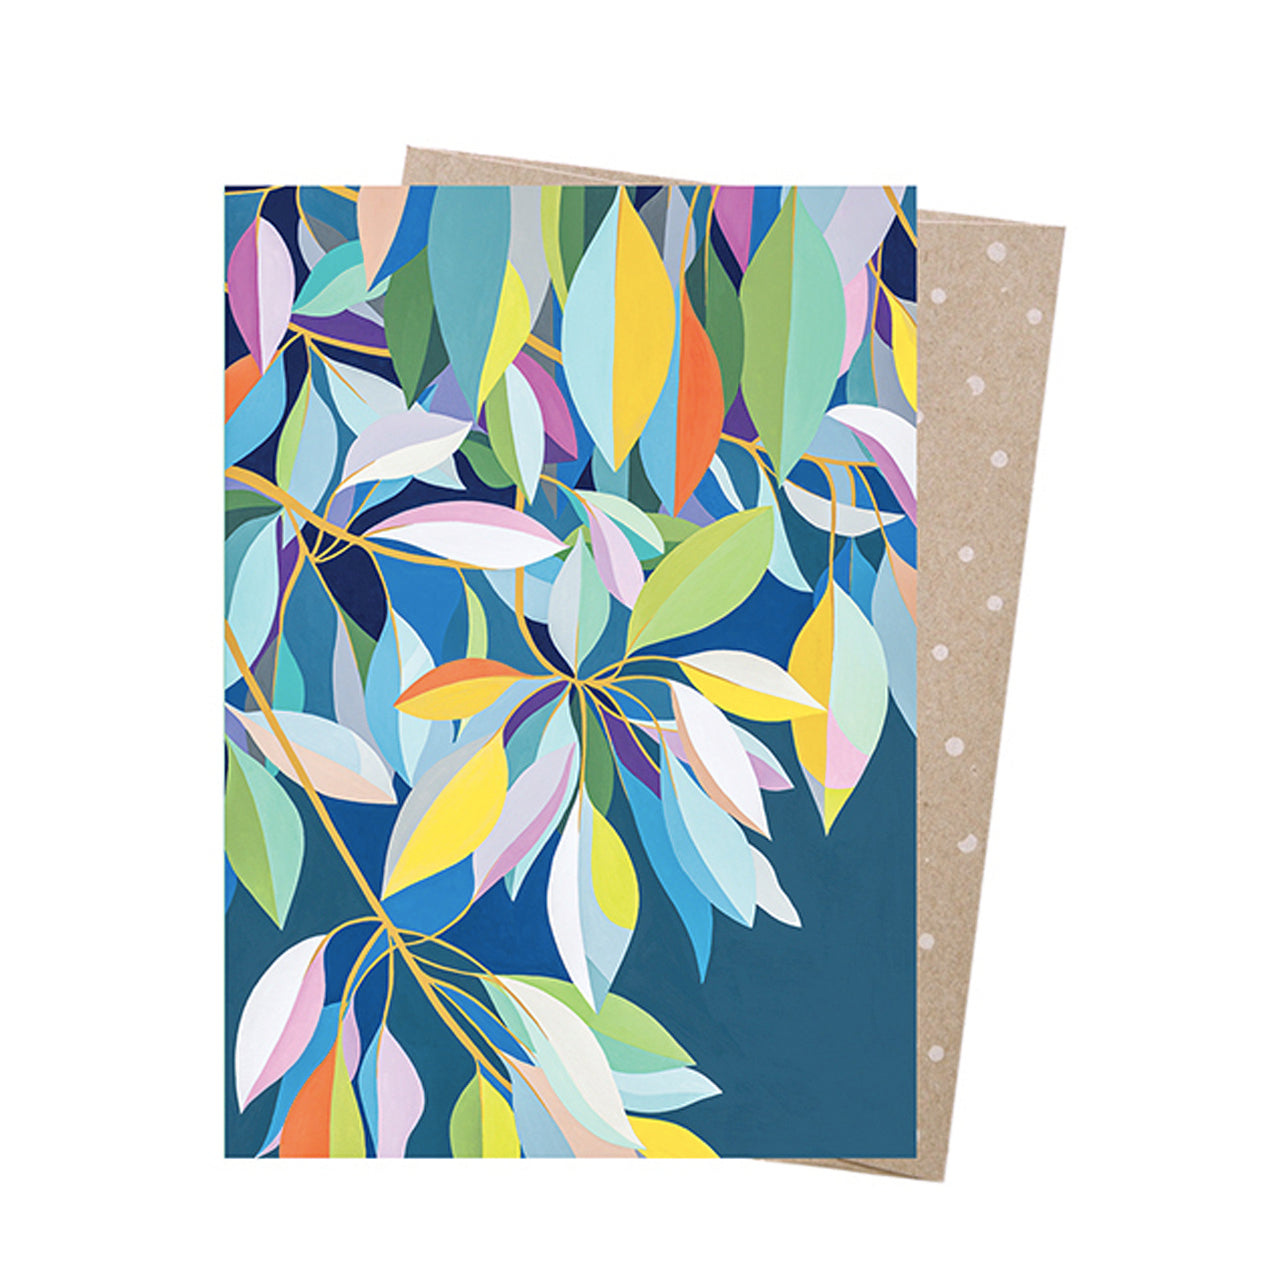 Earth Greetings Card -Moreton Bay Fig